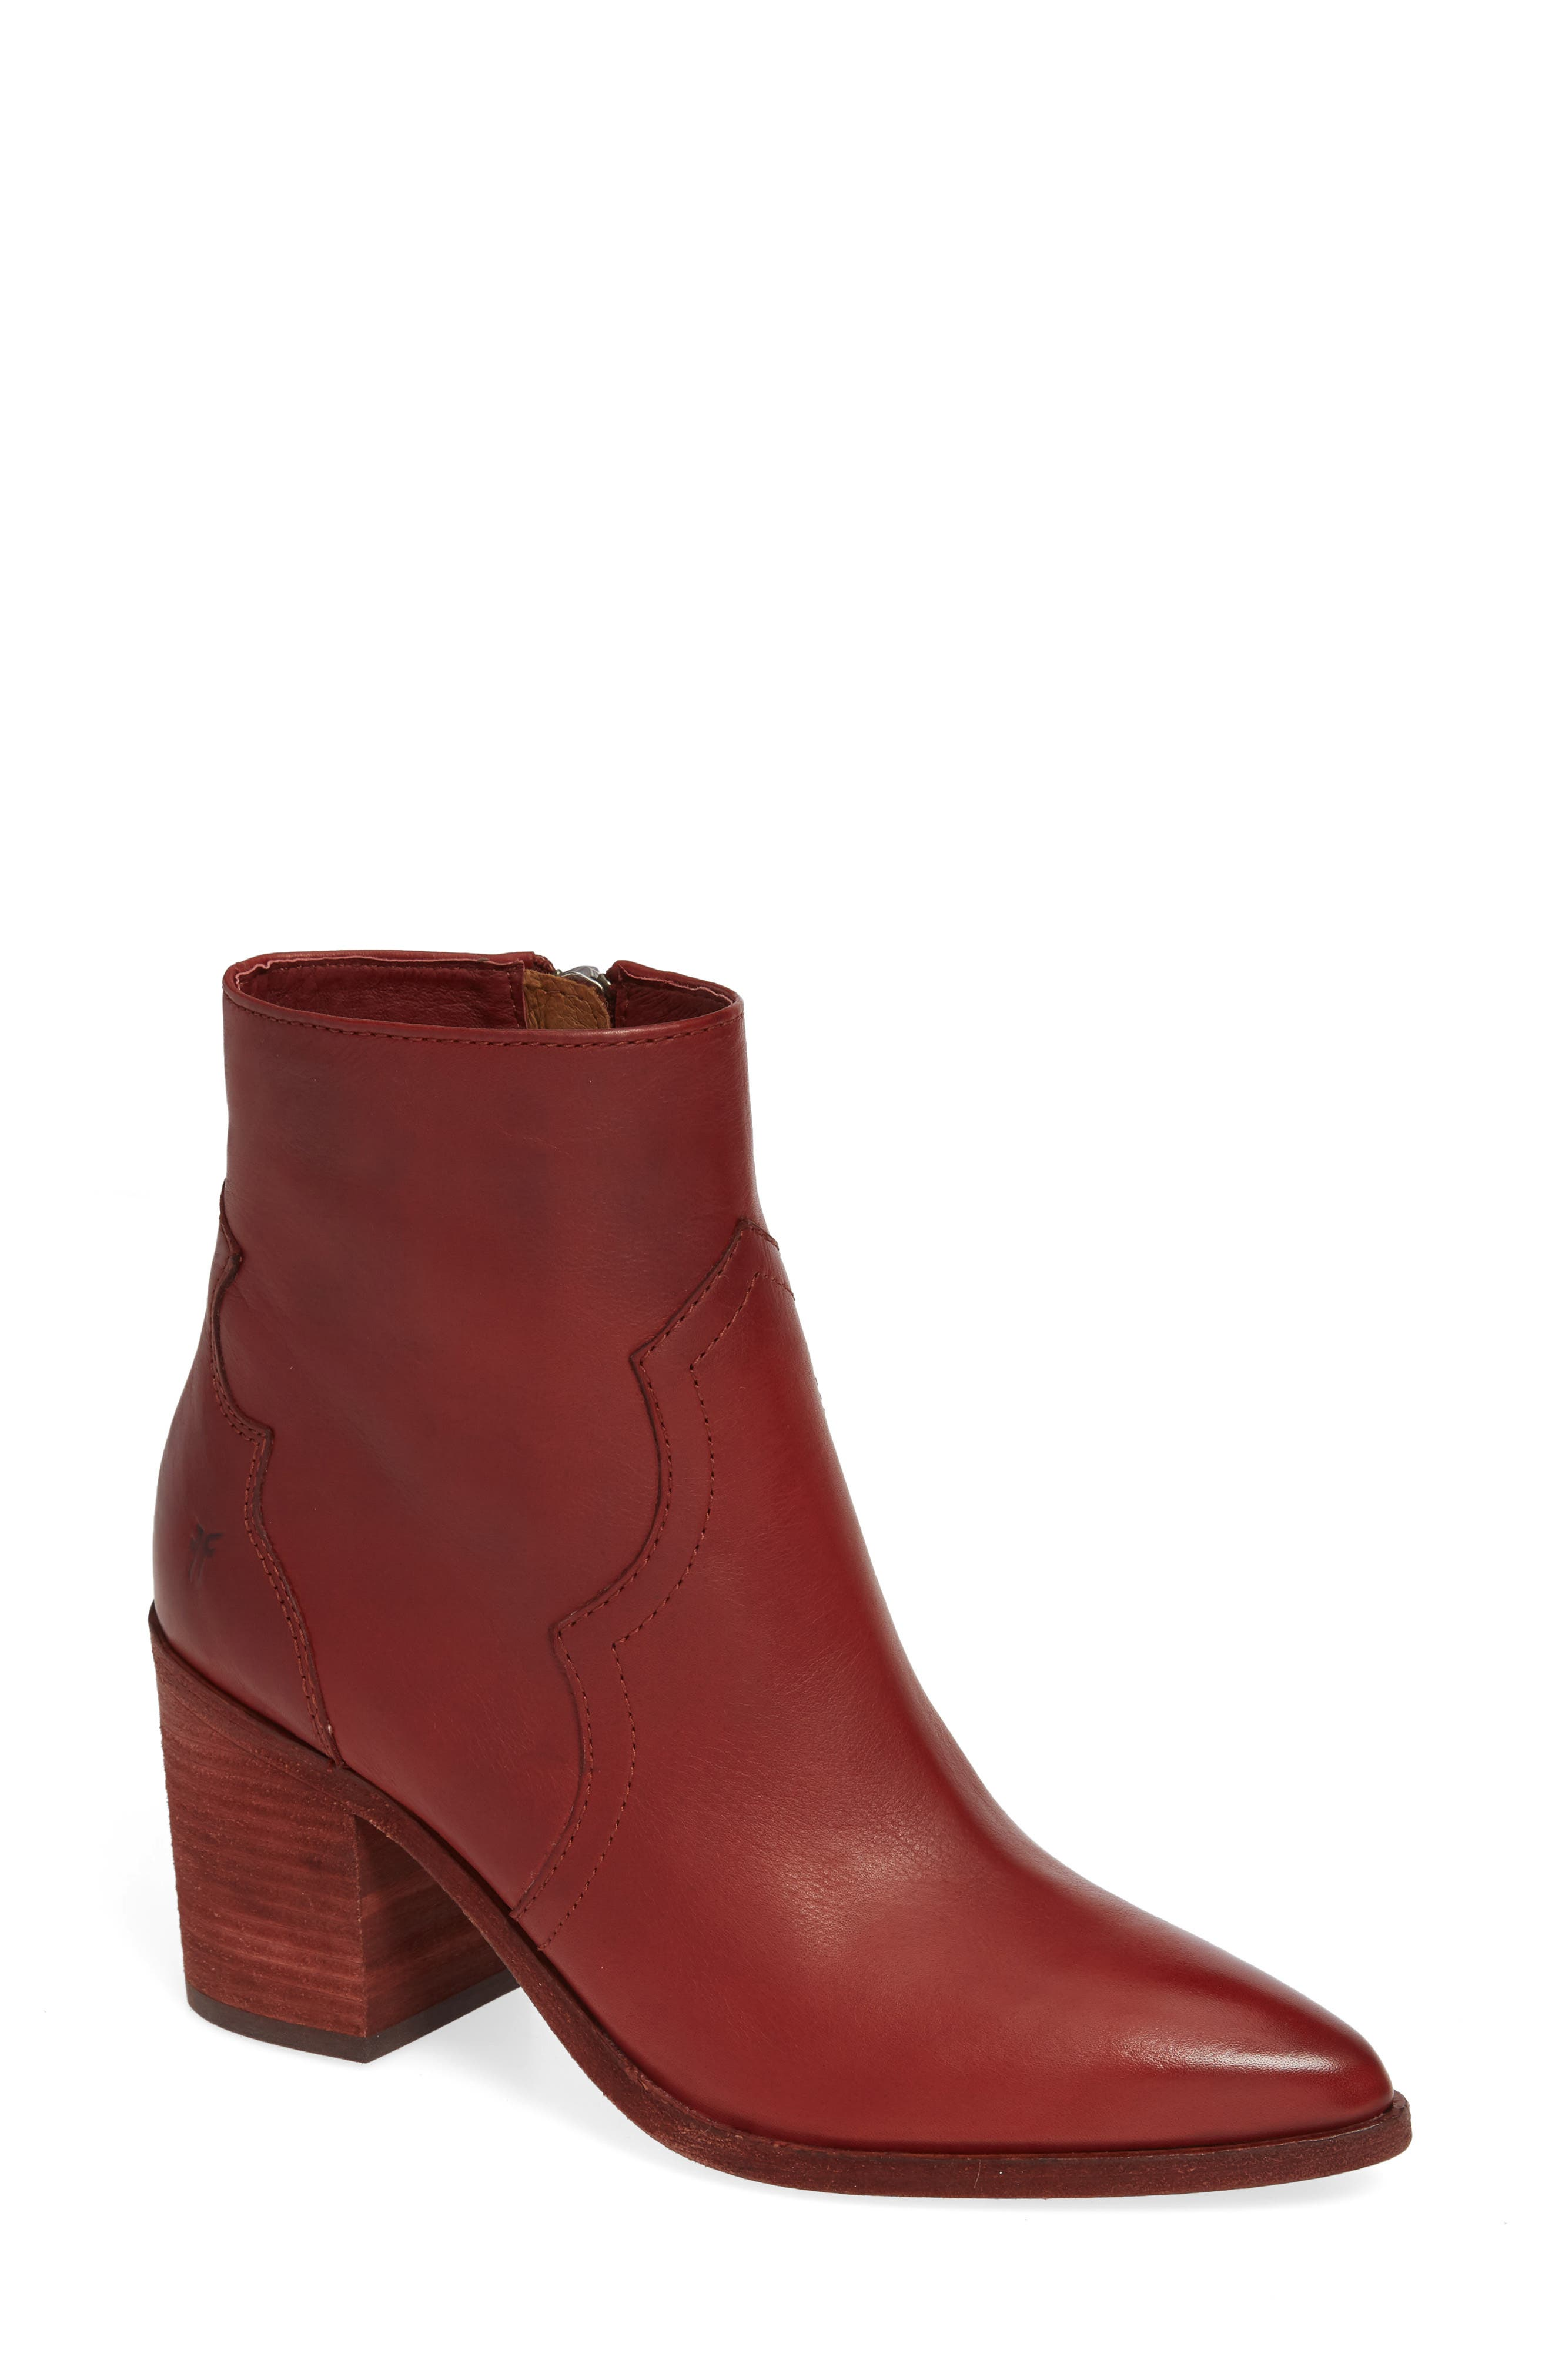 Flynn Bootie,                         Main,                         color, RED CLAY LEATHER